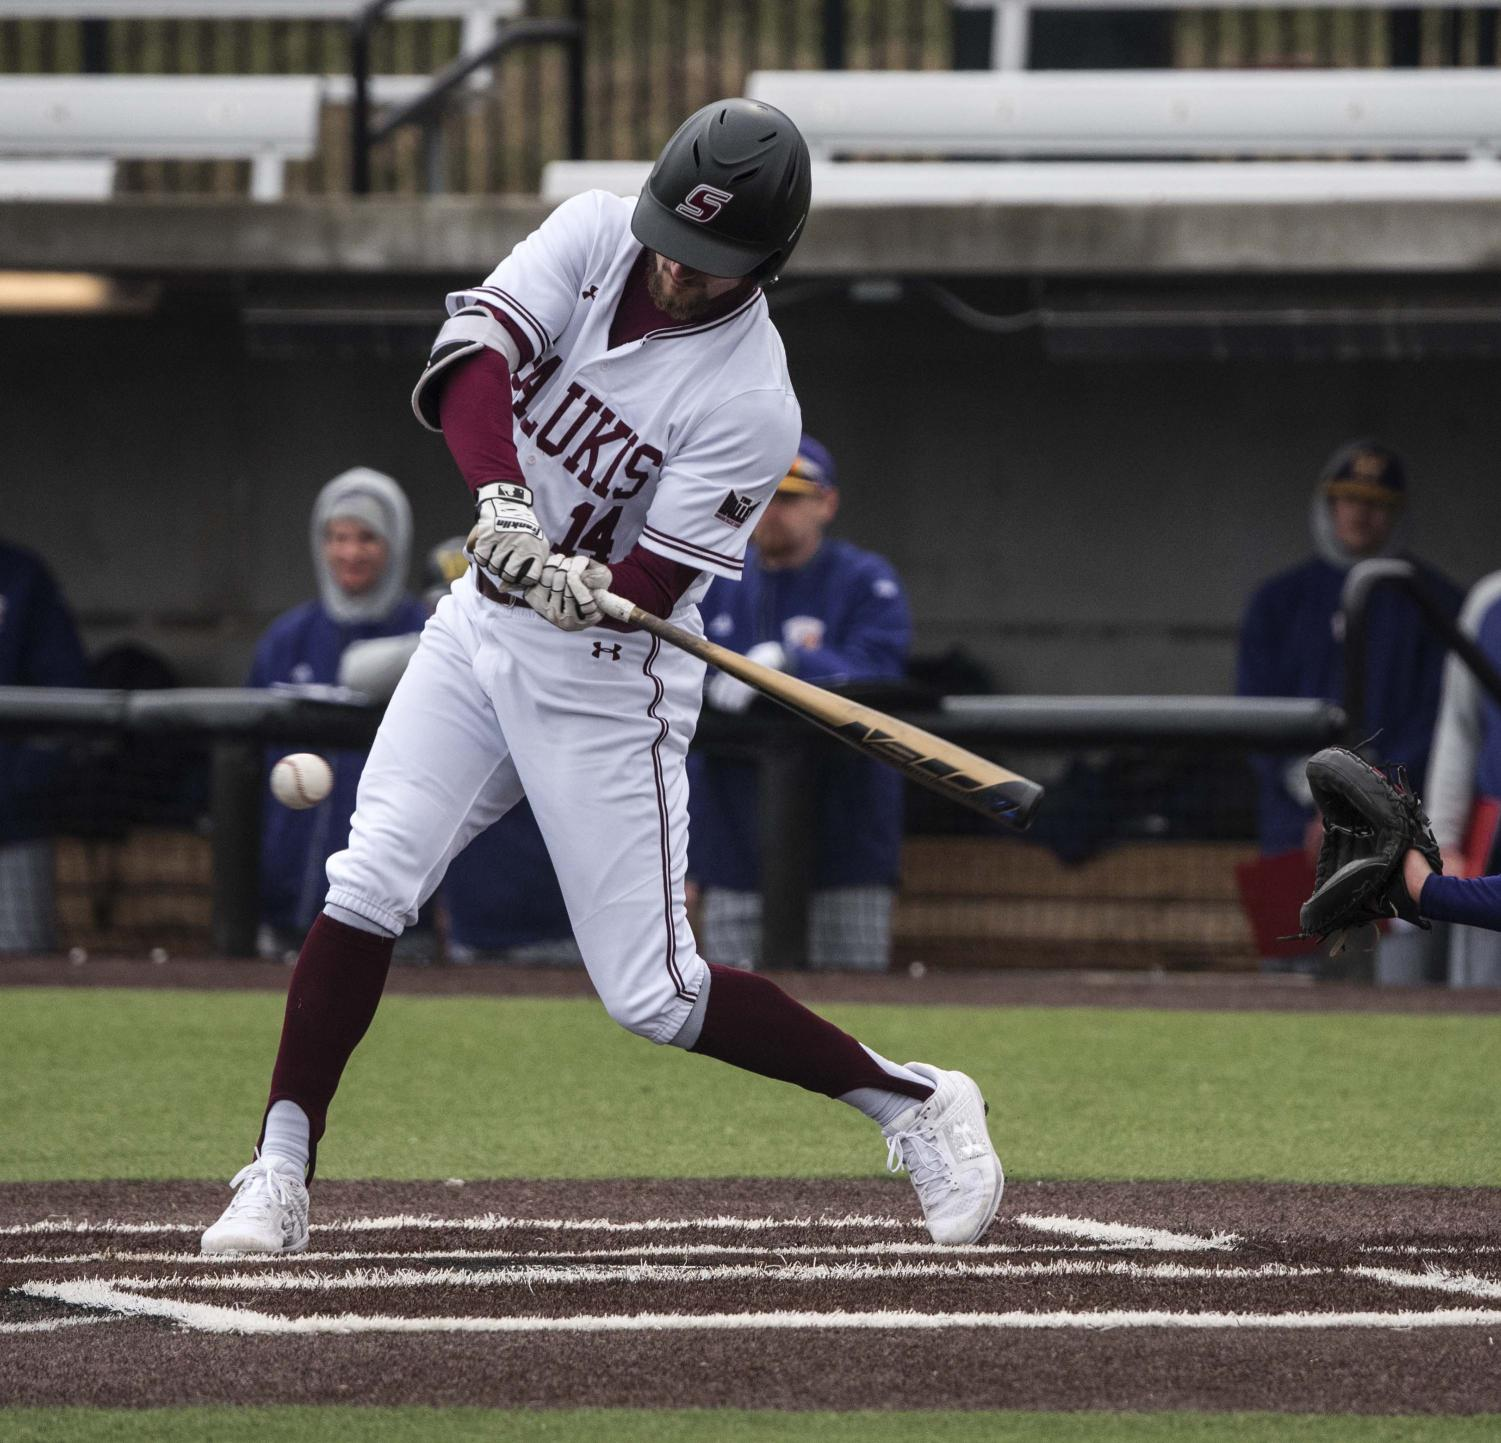 Saluki+outfielder+Addison+Fugitt+hits+the+ball+on+Friday%2C+March+1%2C+2019+during+the+Salukis%27+8-1+win+against+Western+Illinois.